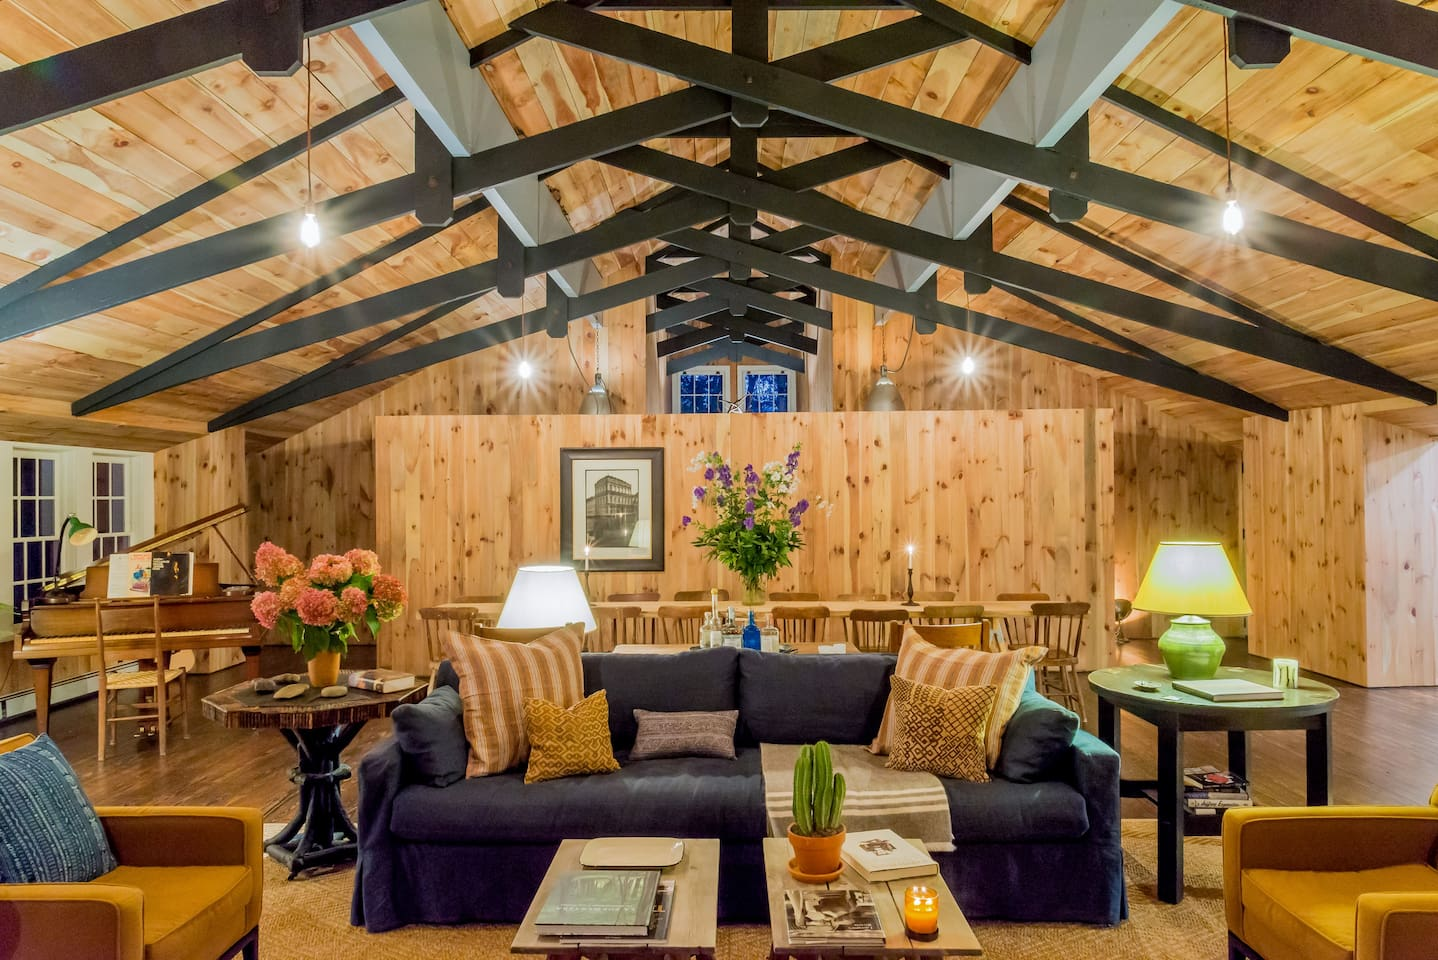 Bonner Lodge's Great Room -- wide open living space with warm Adirondack furnishings and a dash of modern